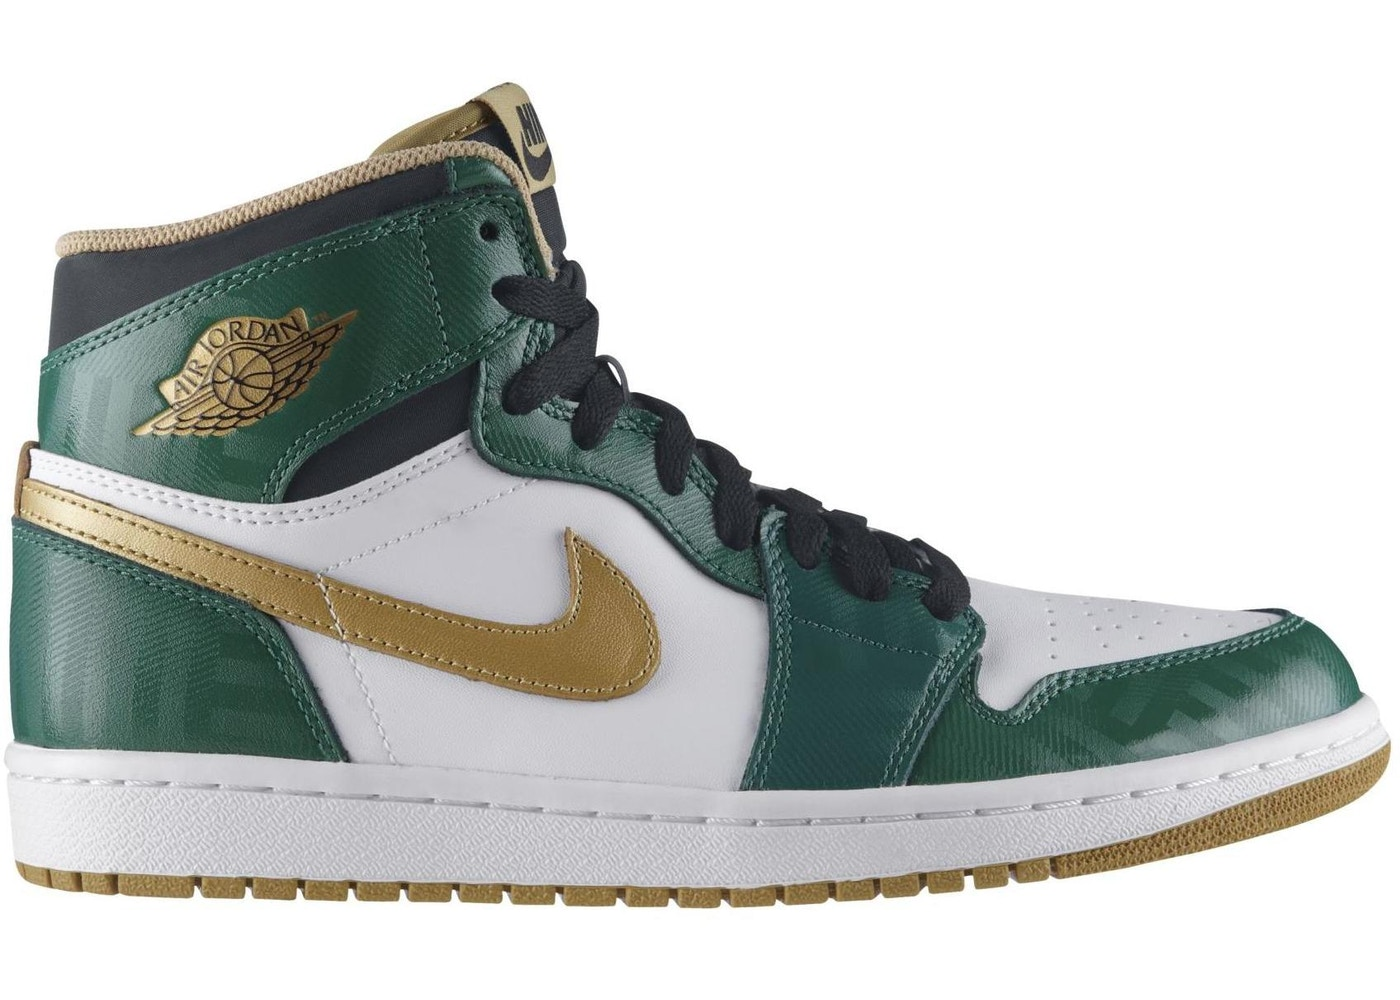 new product 50bf2 cd7f3 Jordan 1 OG Celtics - 555088-315